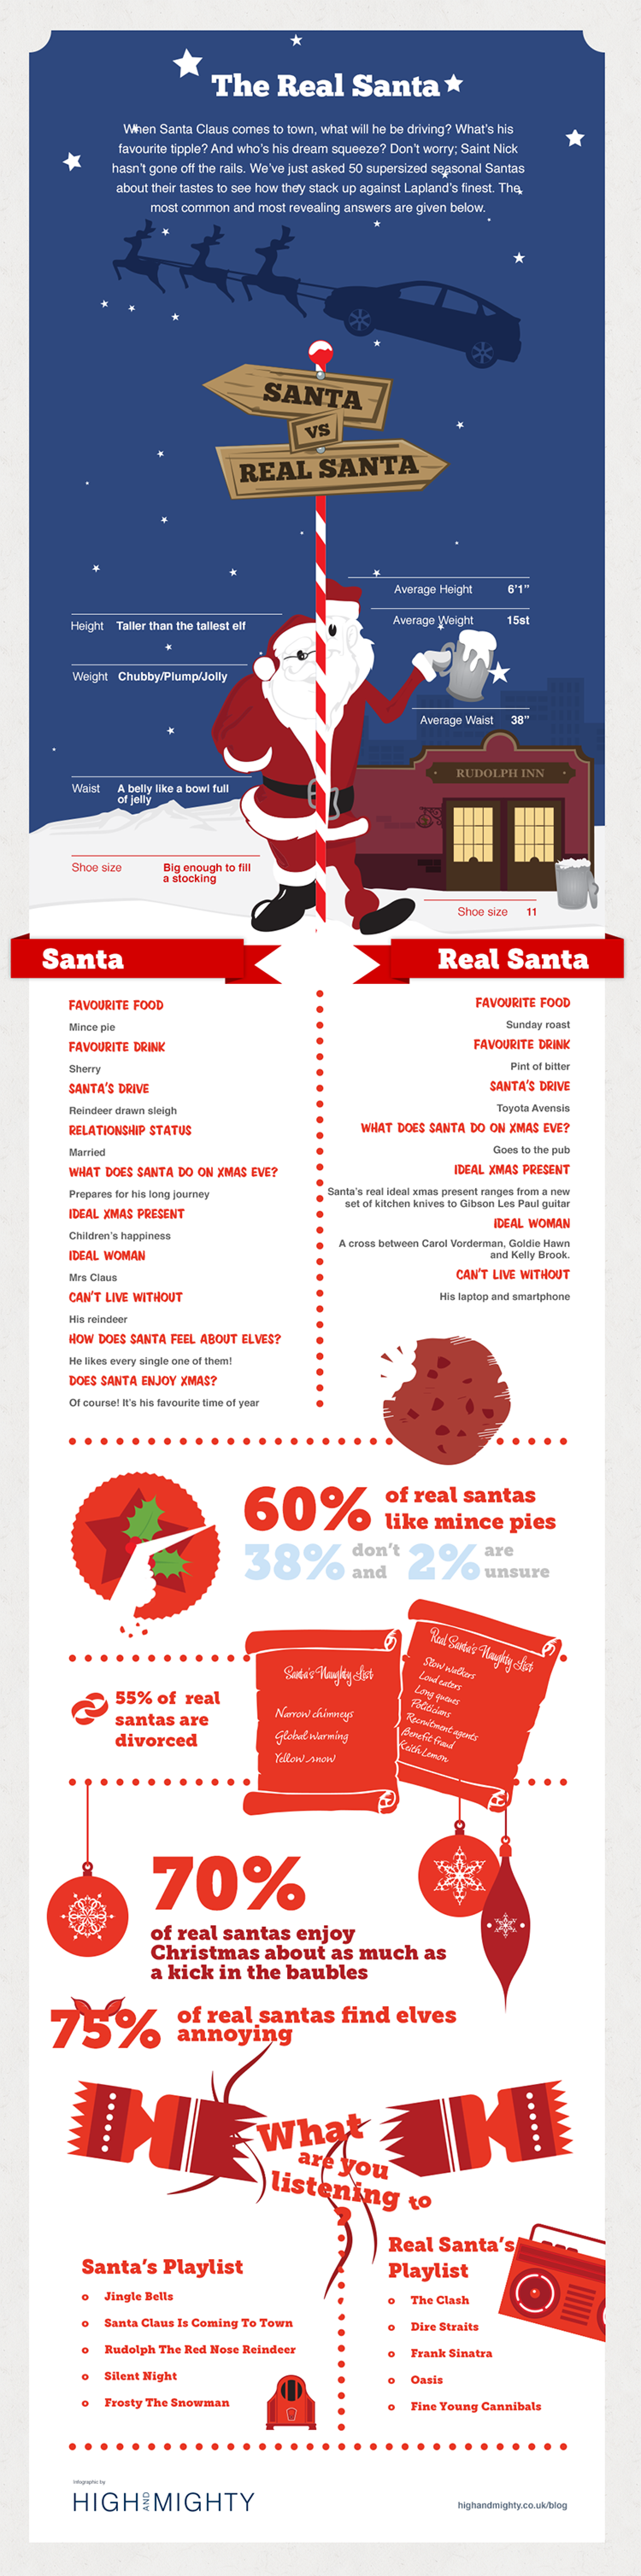 The Real Santa Infographic